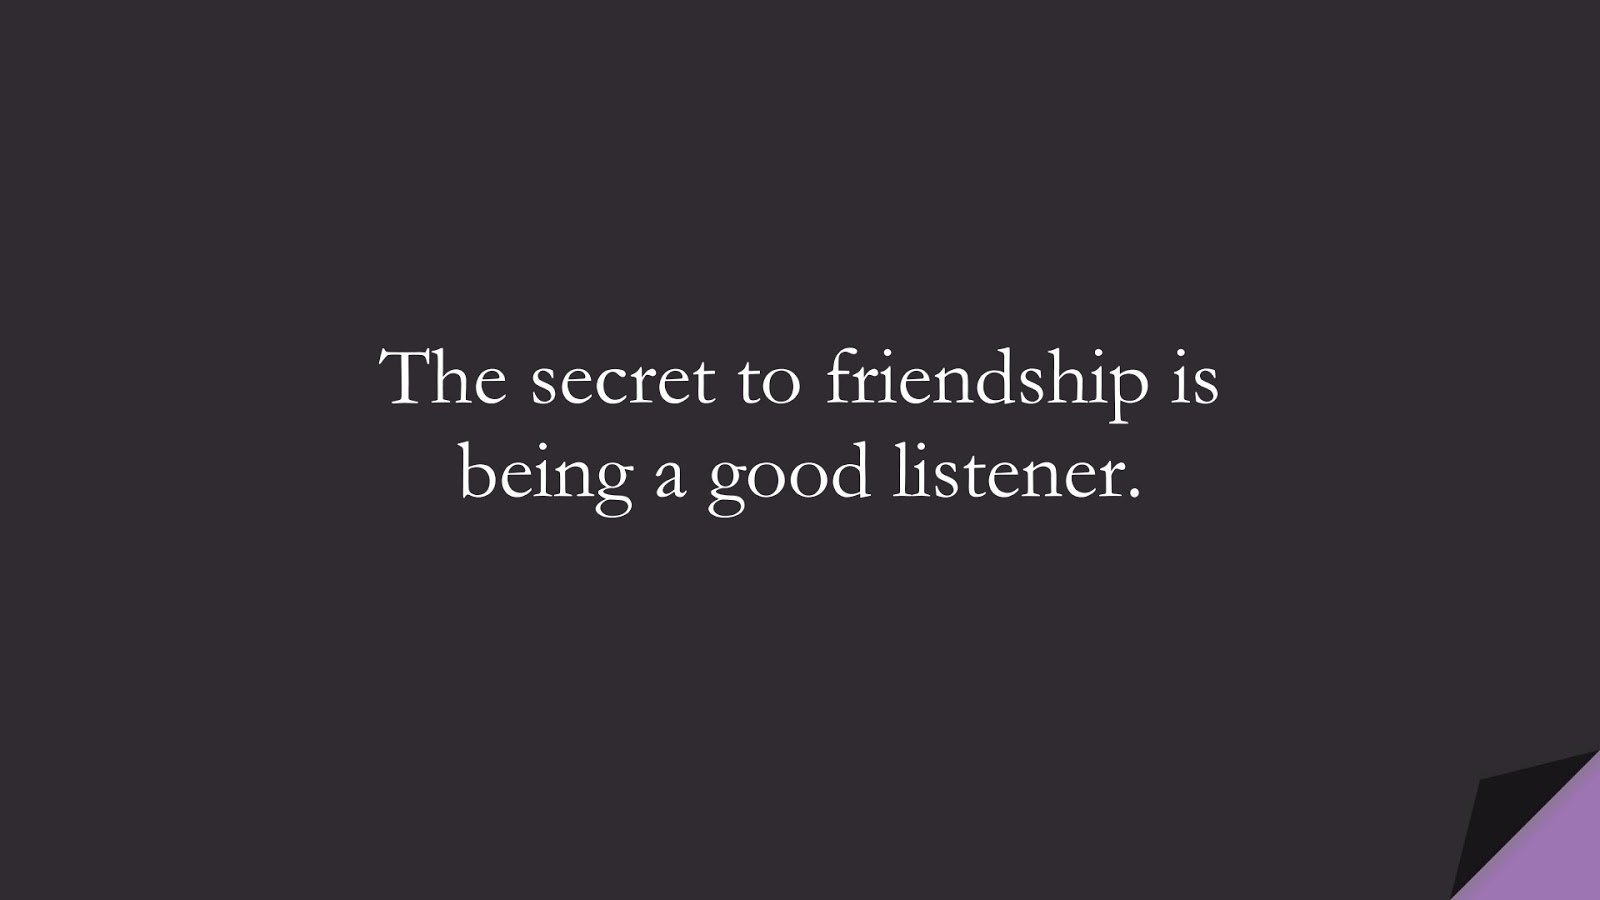 The secret to friendship is being a good listener.FALSE